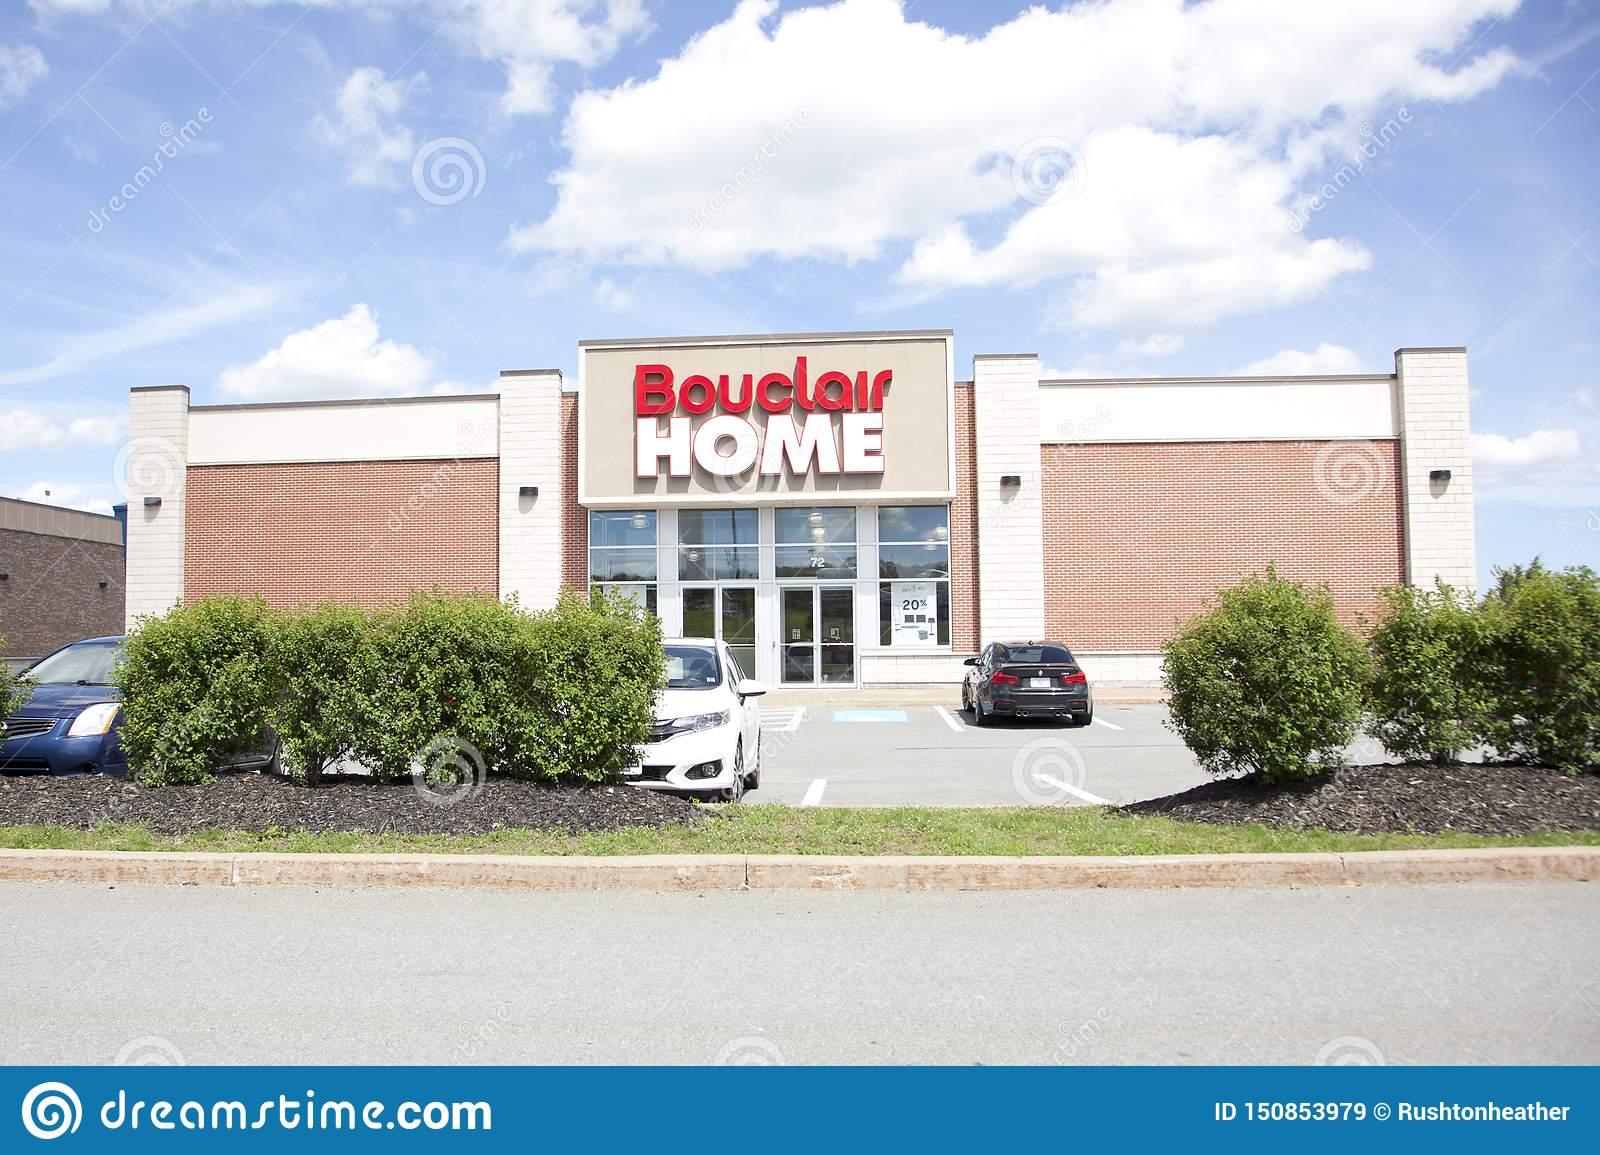 The Lifestyle And Home Store Bouclair In Dartmouth Editorial Stock Image Image Of Entrance Retailer 150853979